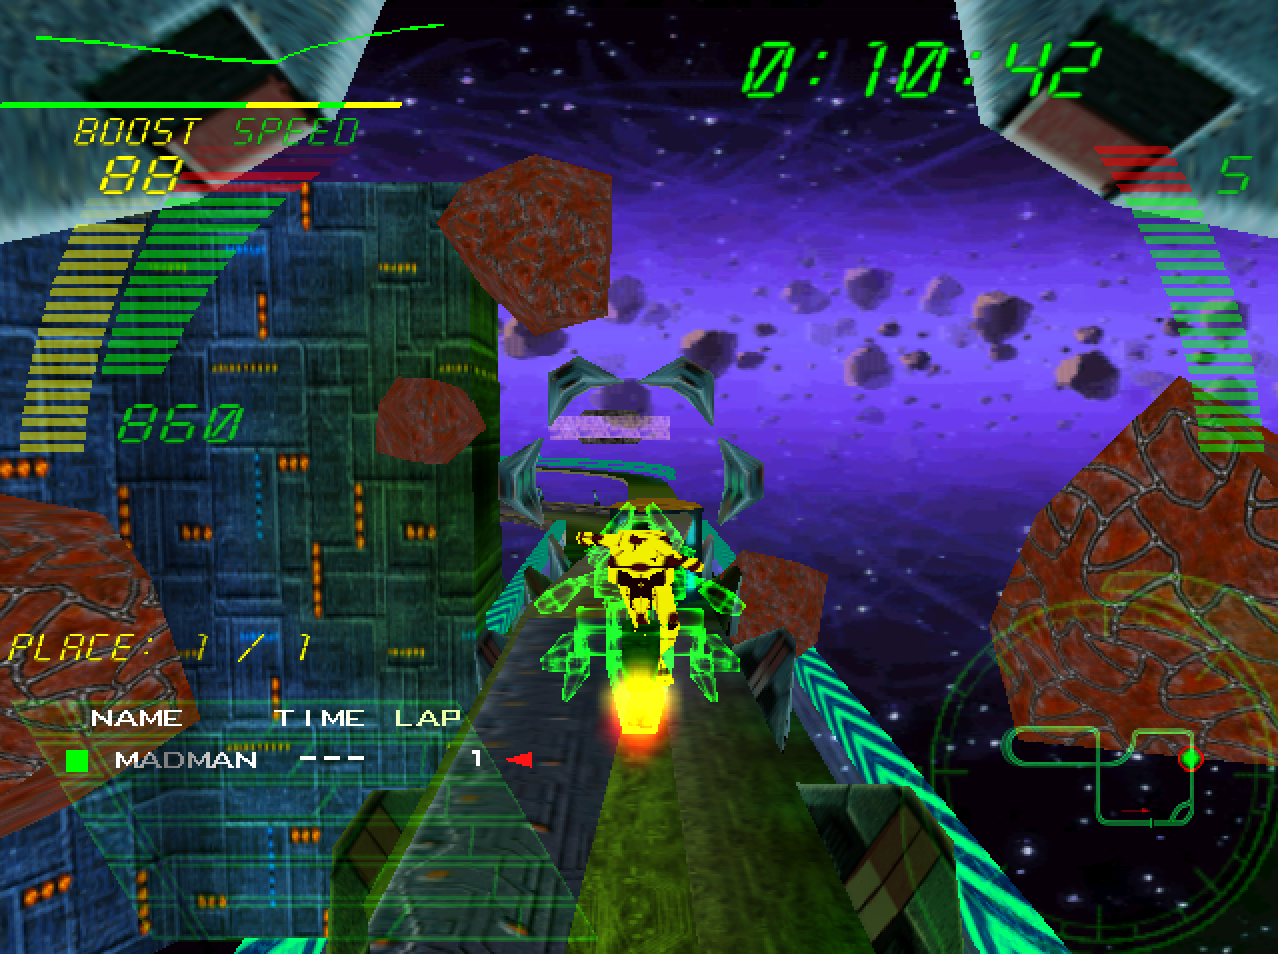 An Unreleased Dreamcast Game Has Just Been Discovered And